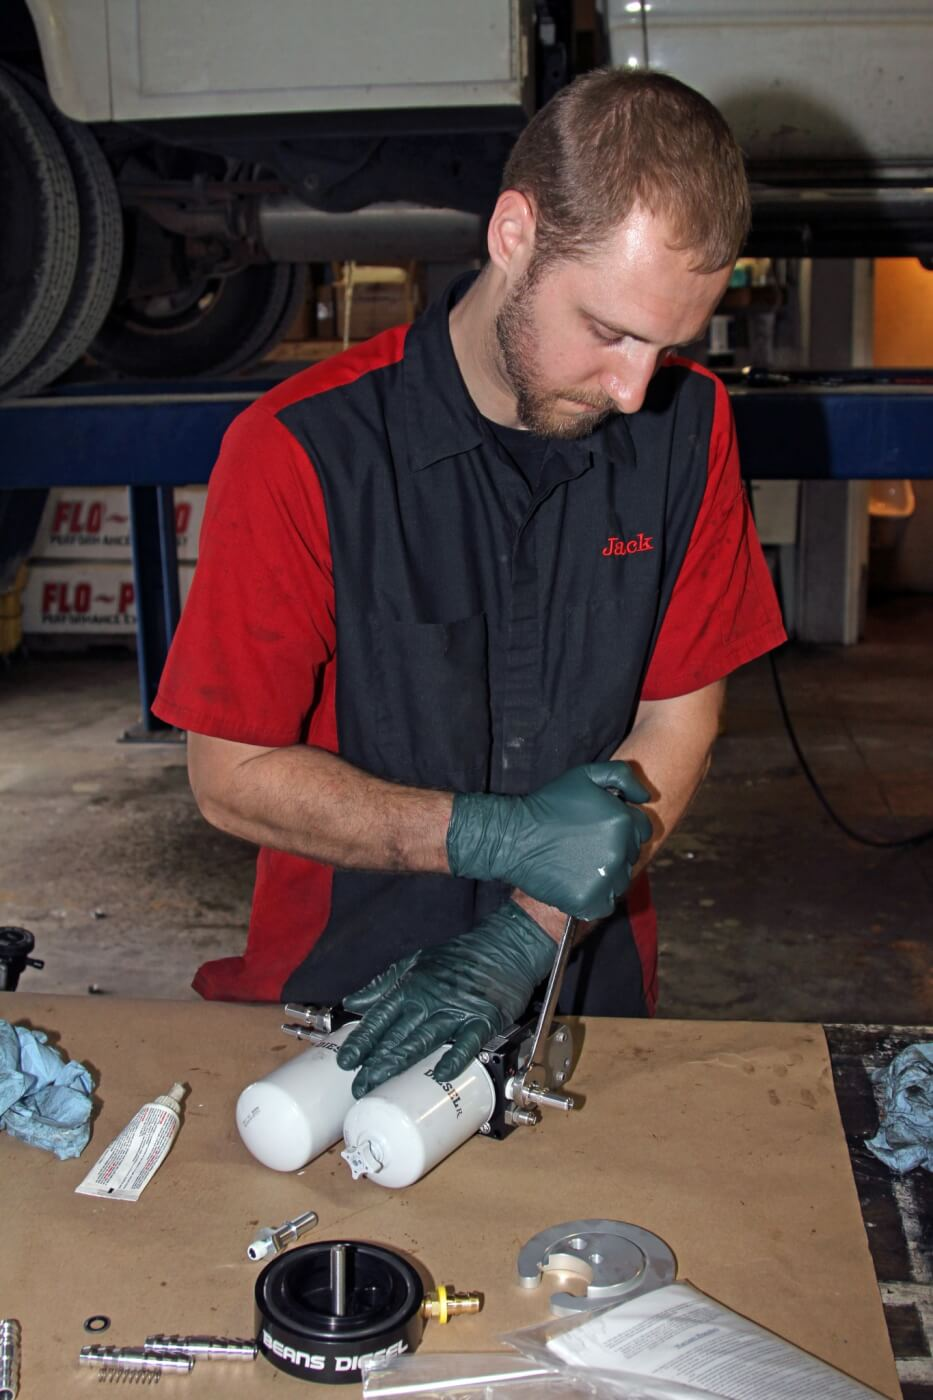 16. After raising the truck, Grubb drilled a small 5/16-inch hole where the BDP sump would be installed to start draining it. While the tank was draining into clean five-gallon buckets, Grubb installed the fittings on the AirDog system and assembled the pump mounting brackets.